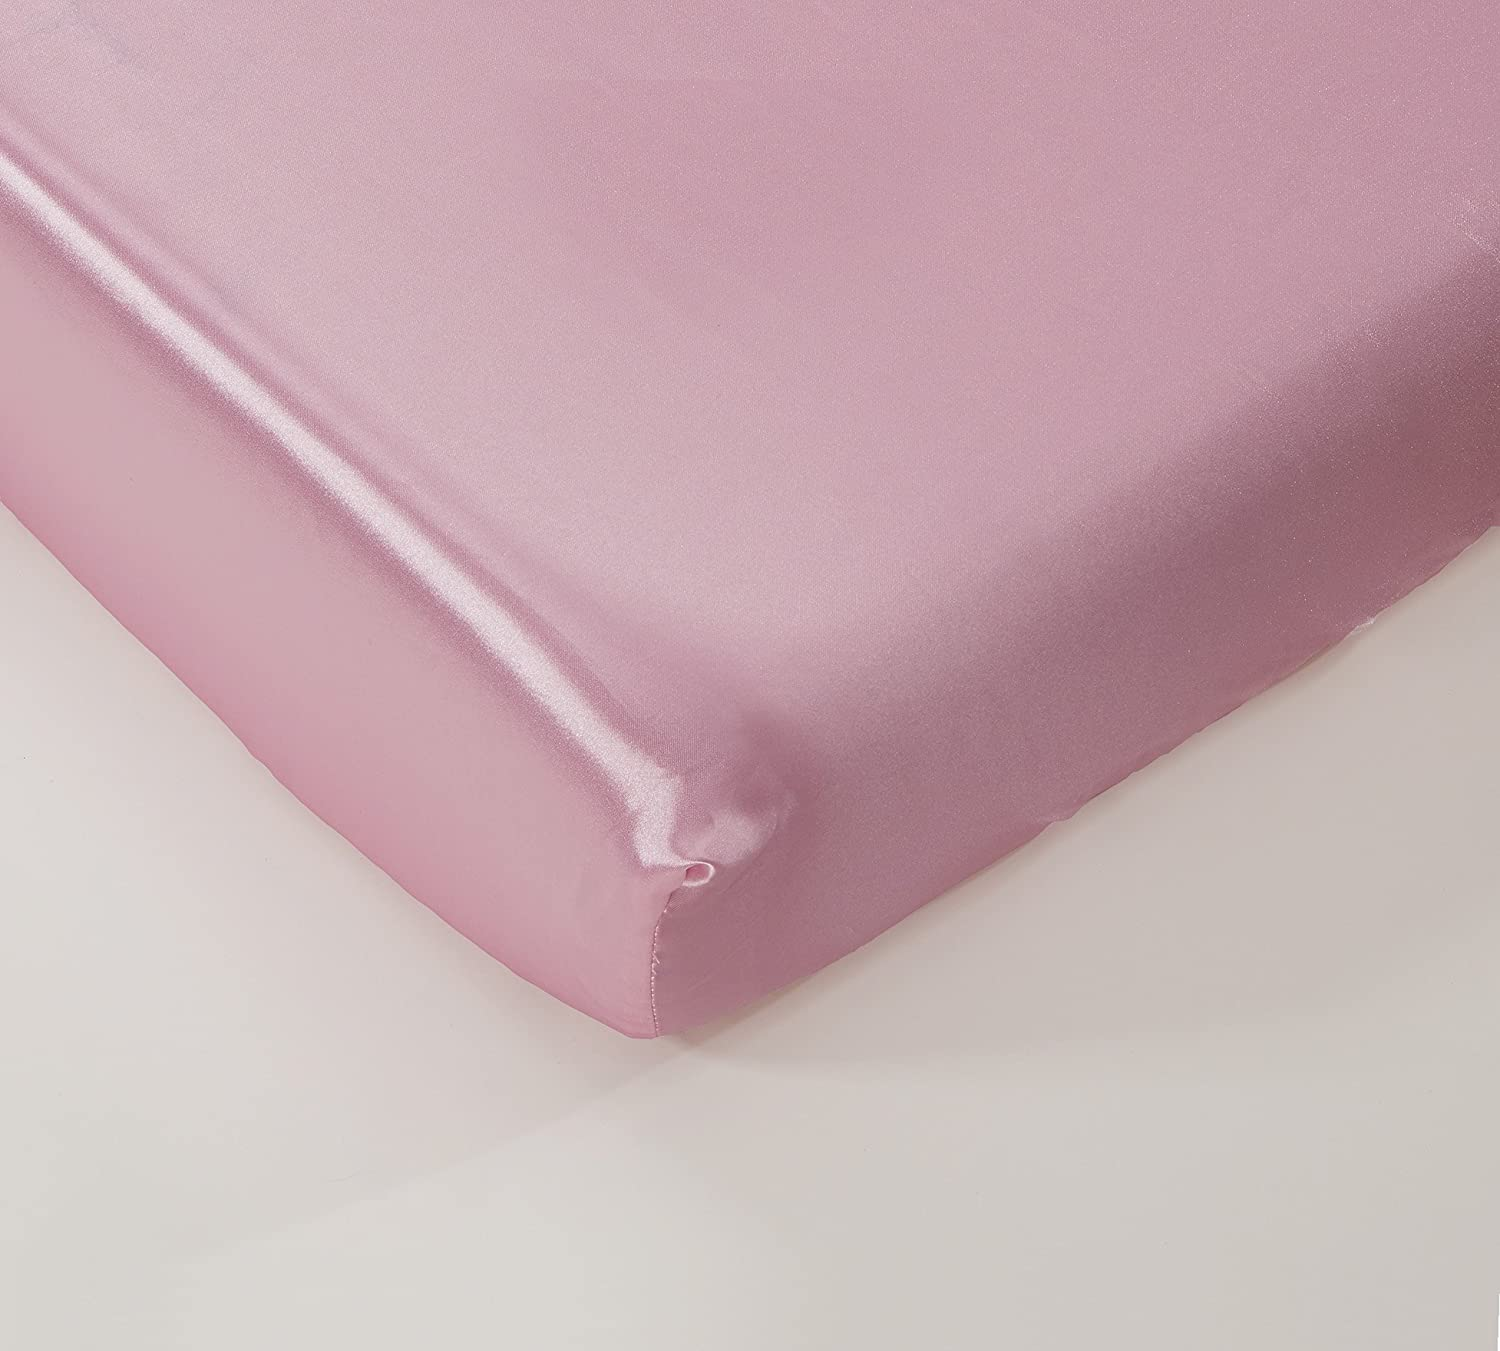 Light Pink EHP Super Soft /& Silky Satin Crib Fitted Sheet 28 X 52 9 Solid//Deep Pocket